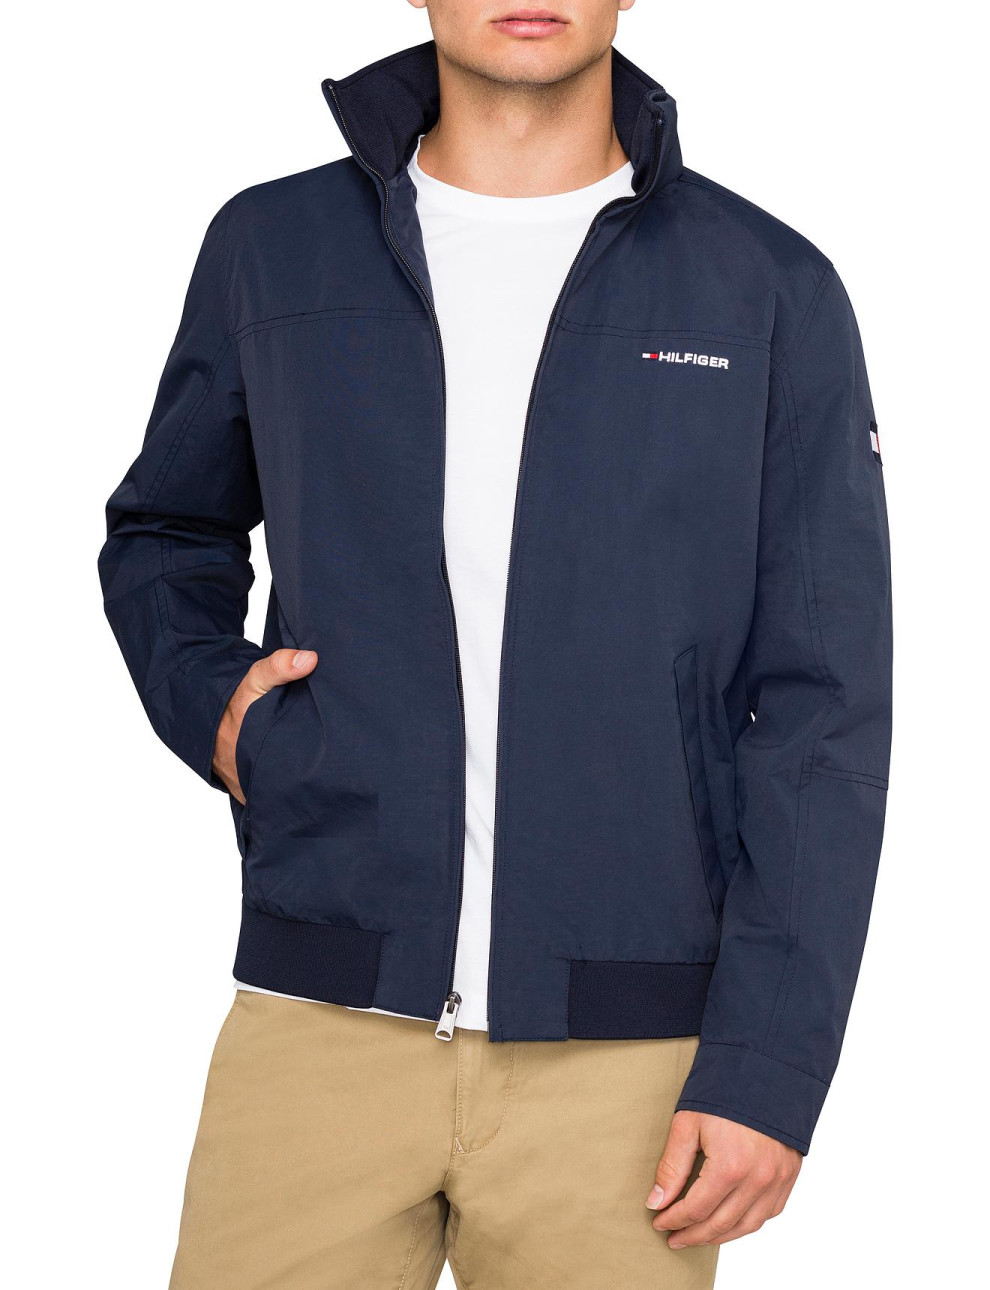 tommy hilfiger navy jacket. Black Bedroom Furniture Sets. Home Design Ideas